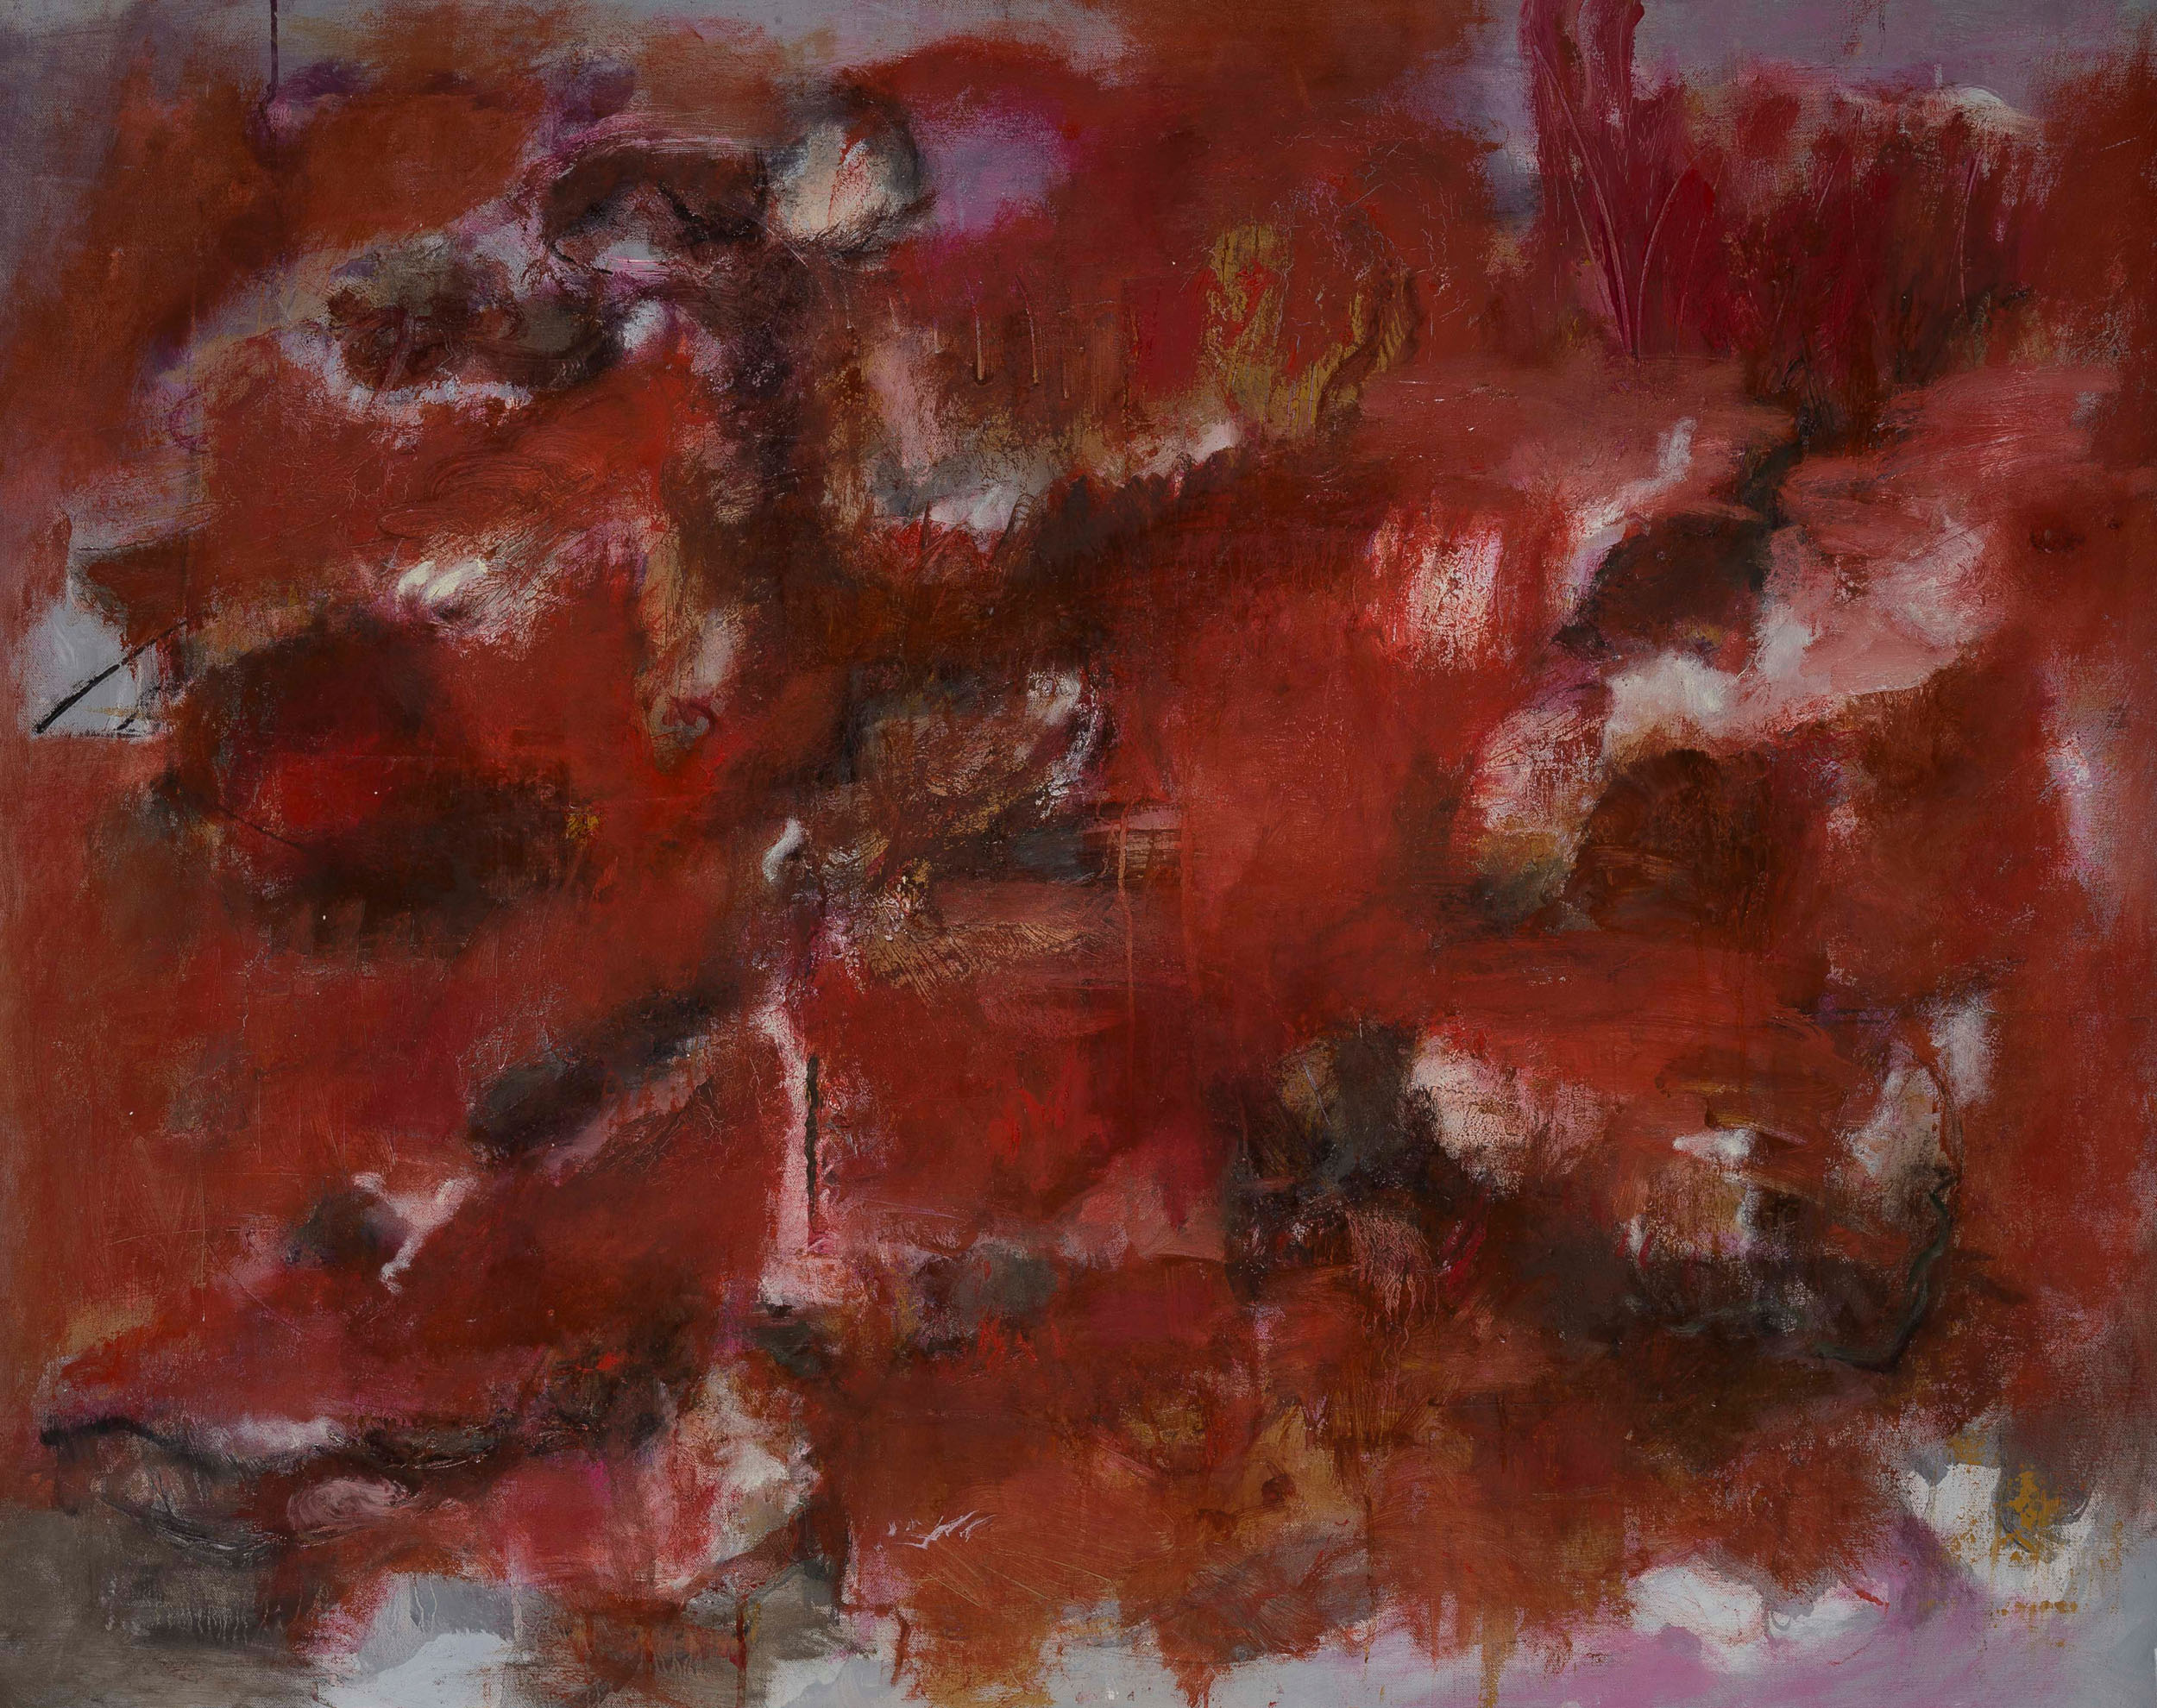 Red, red, red, 2016, oil on canvas, 28 x 36 inches